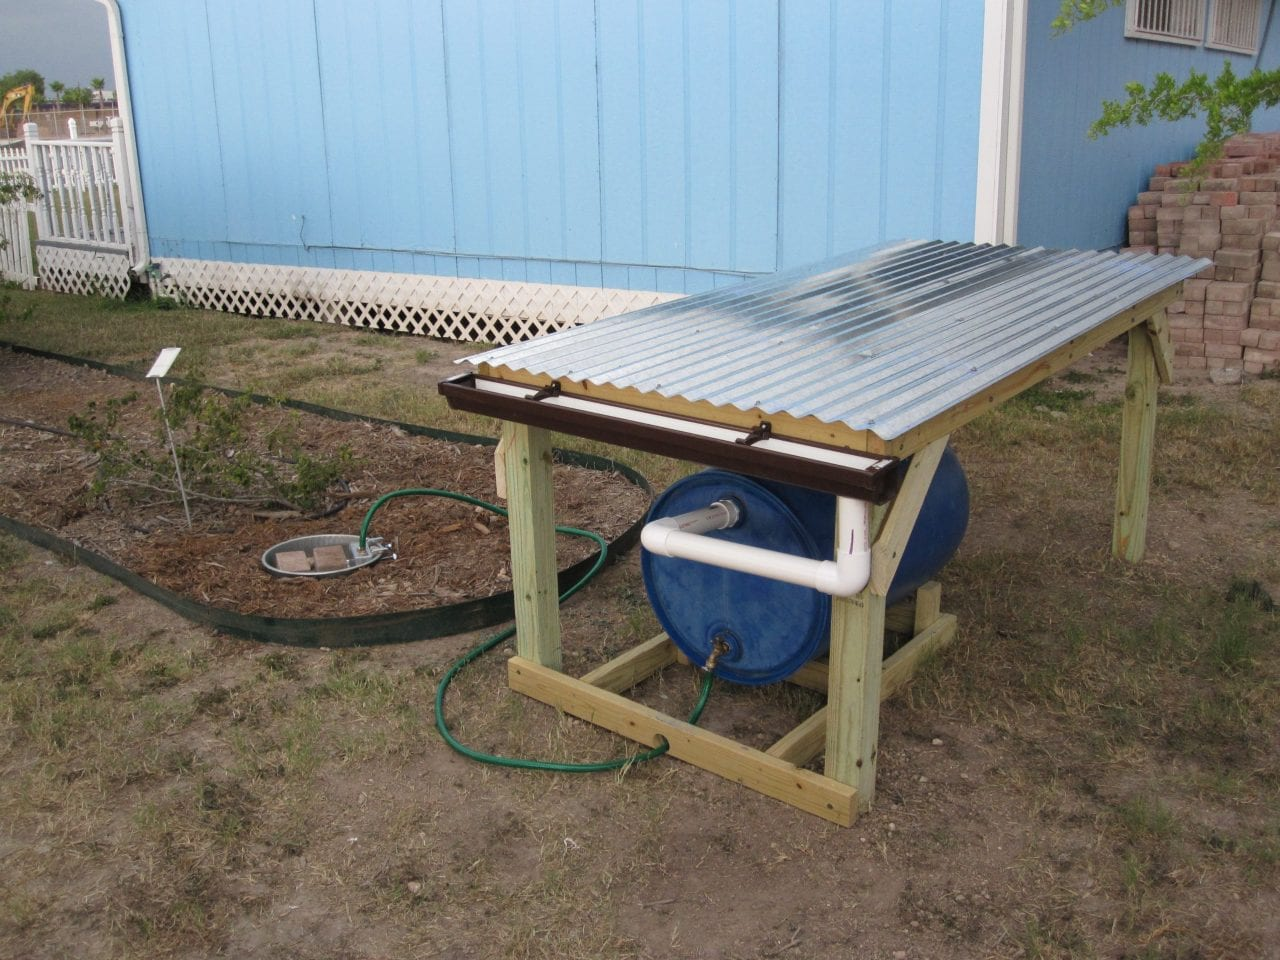 Rain Water Collecting System With Low Budget For Gardening 117